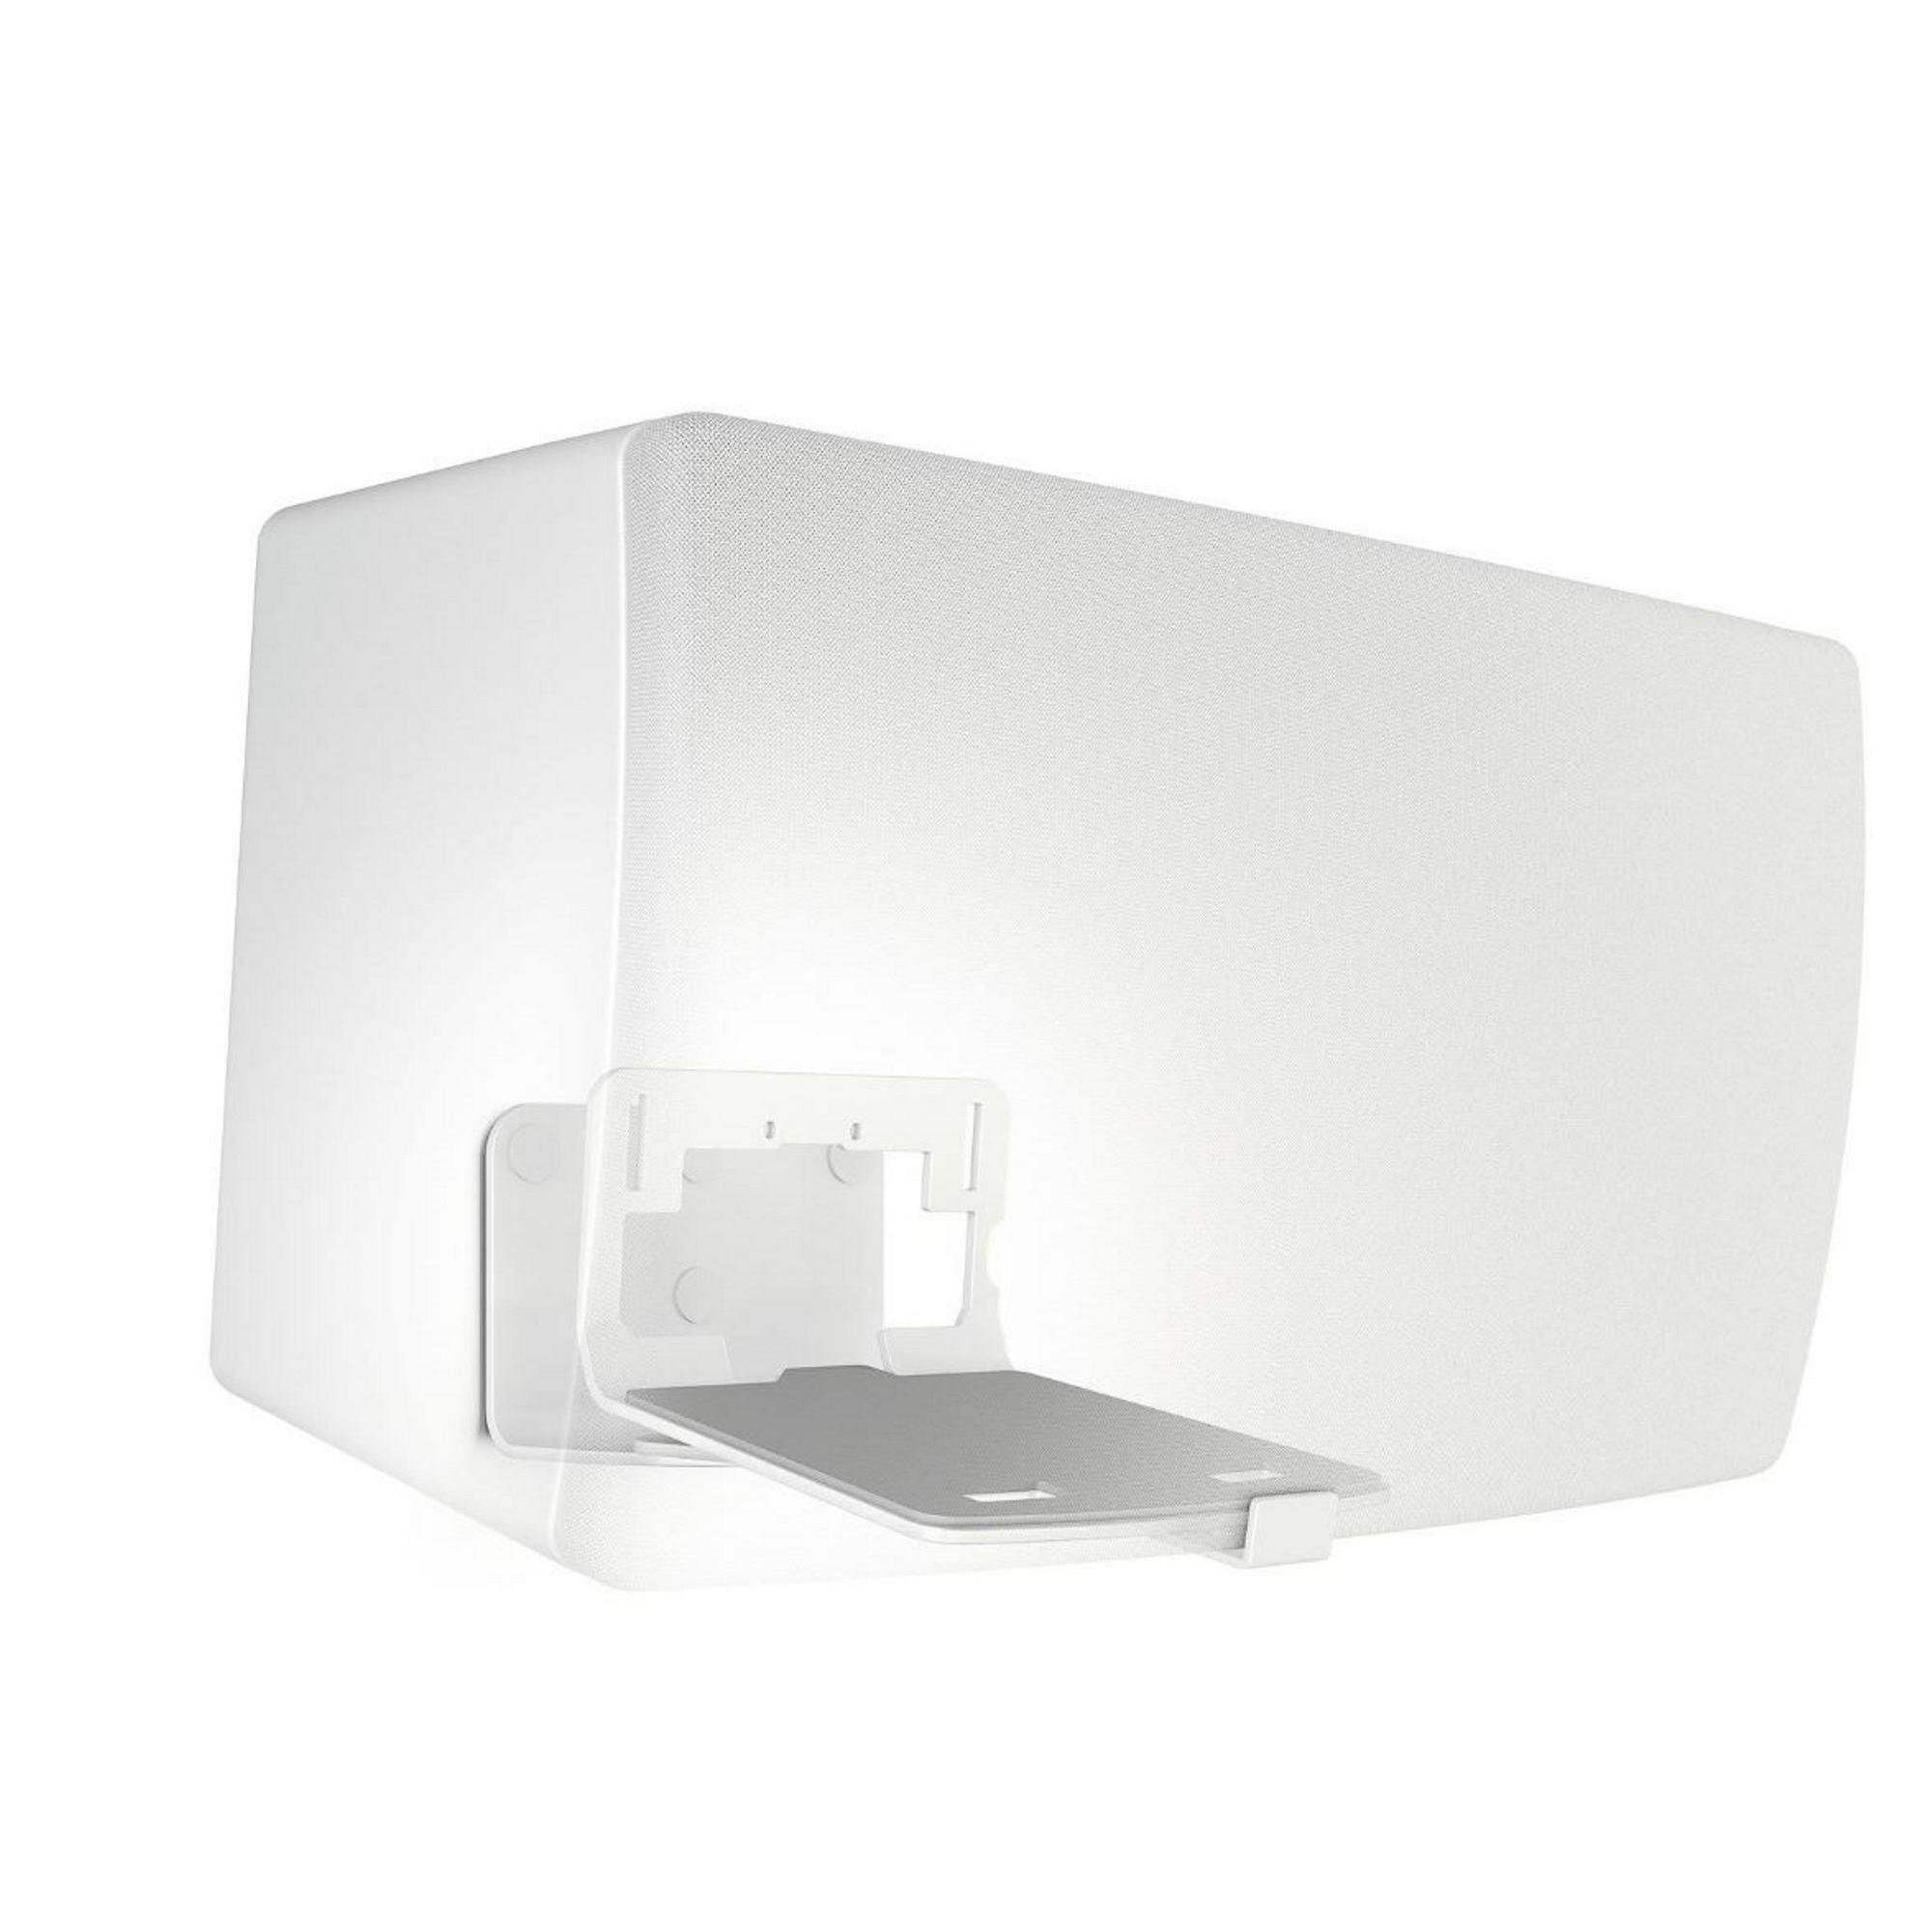 Vogel's Speaker Wall Mount, Universal and for SONOS Play - SOUND 3205 W for Play 5, Denon HEOS 5 & 7 and other speakers, White (single mount)